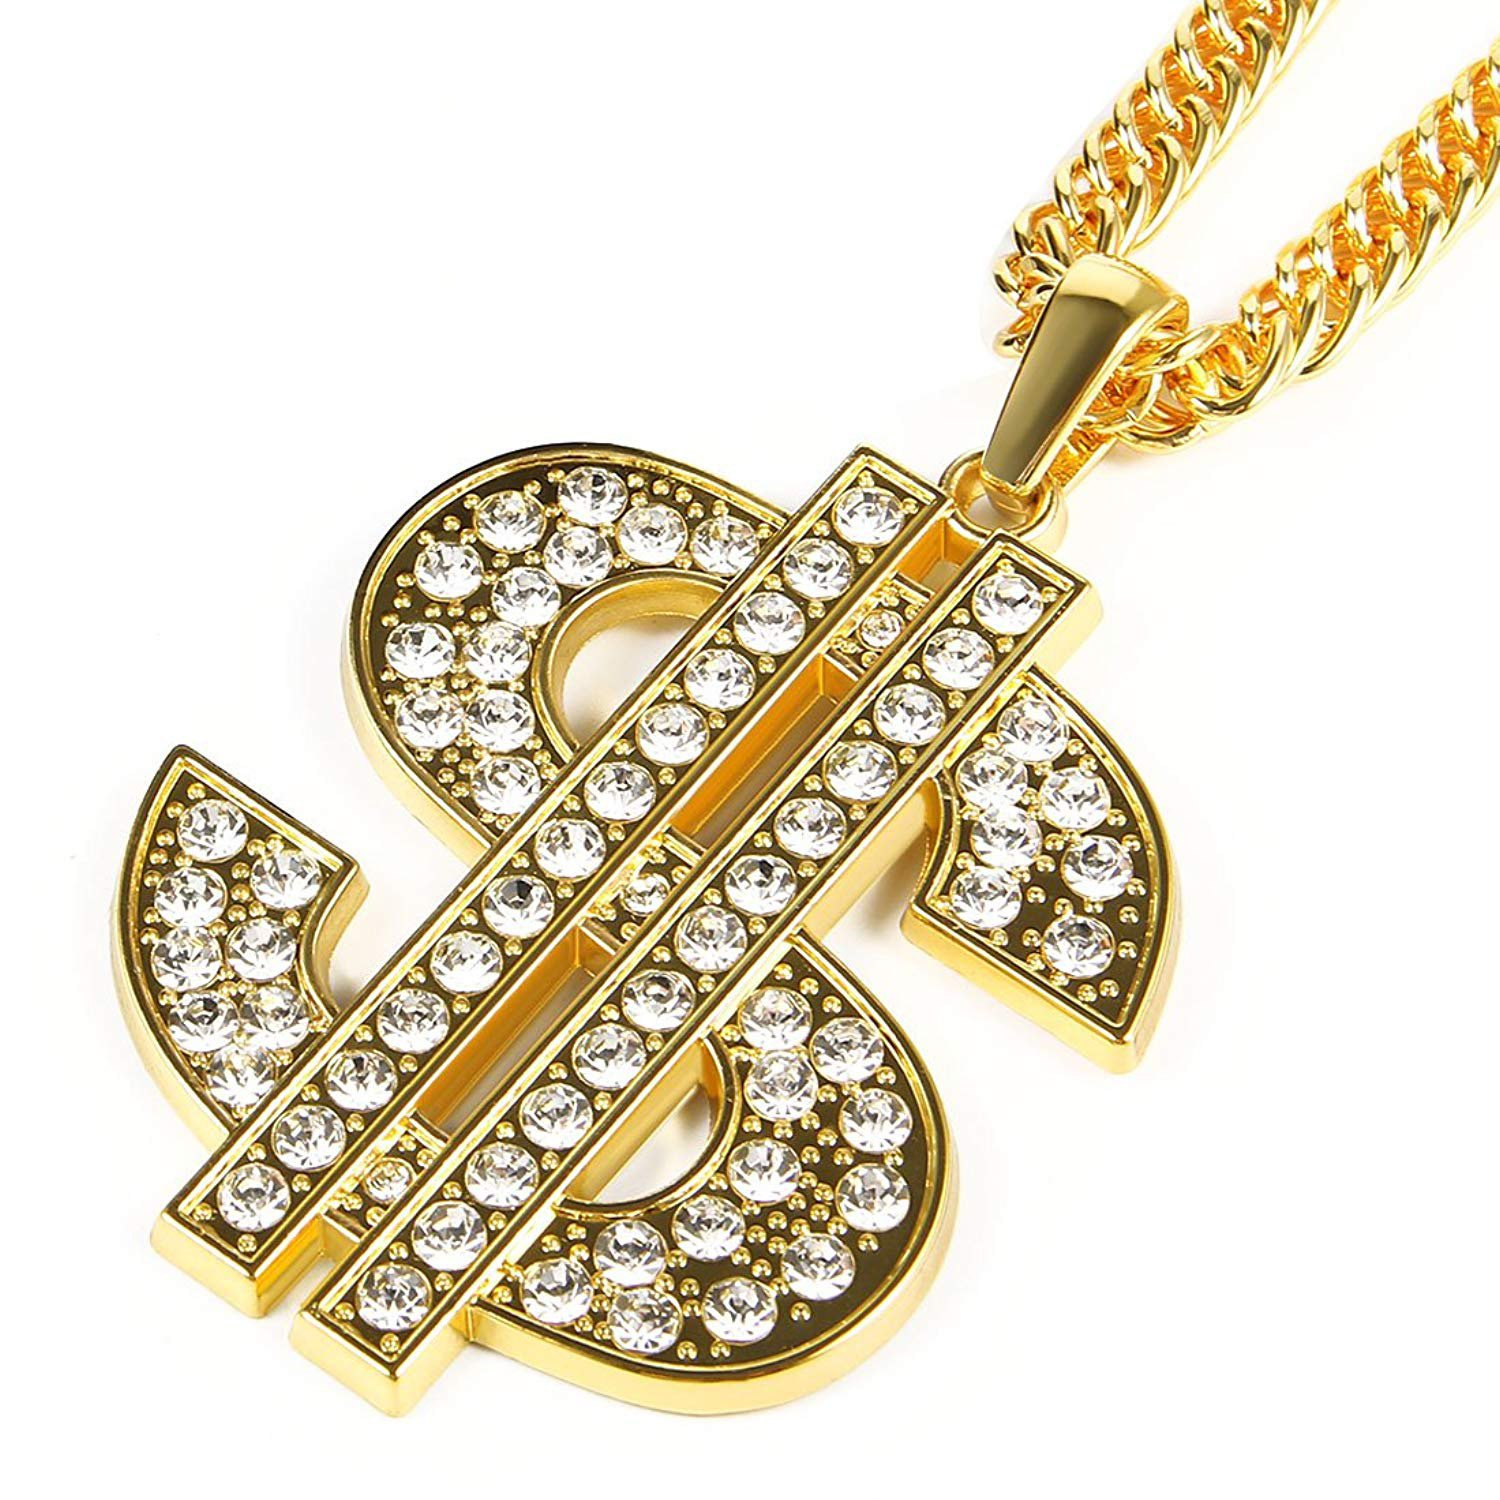 Amazon.com  Bruce Brother Men Gold Plated Chain Necklace Dollar Sign  Pendant Costume Hip Hop Jewelry  Jewelry 0829a6b42d52